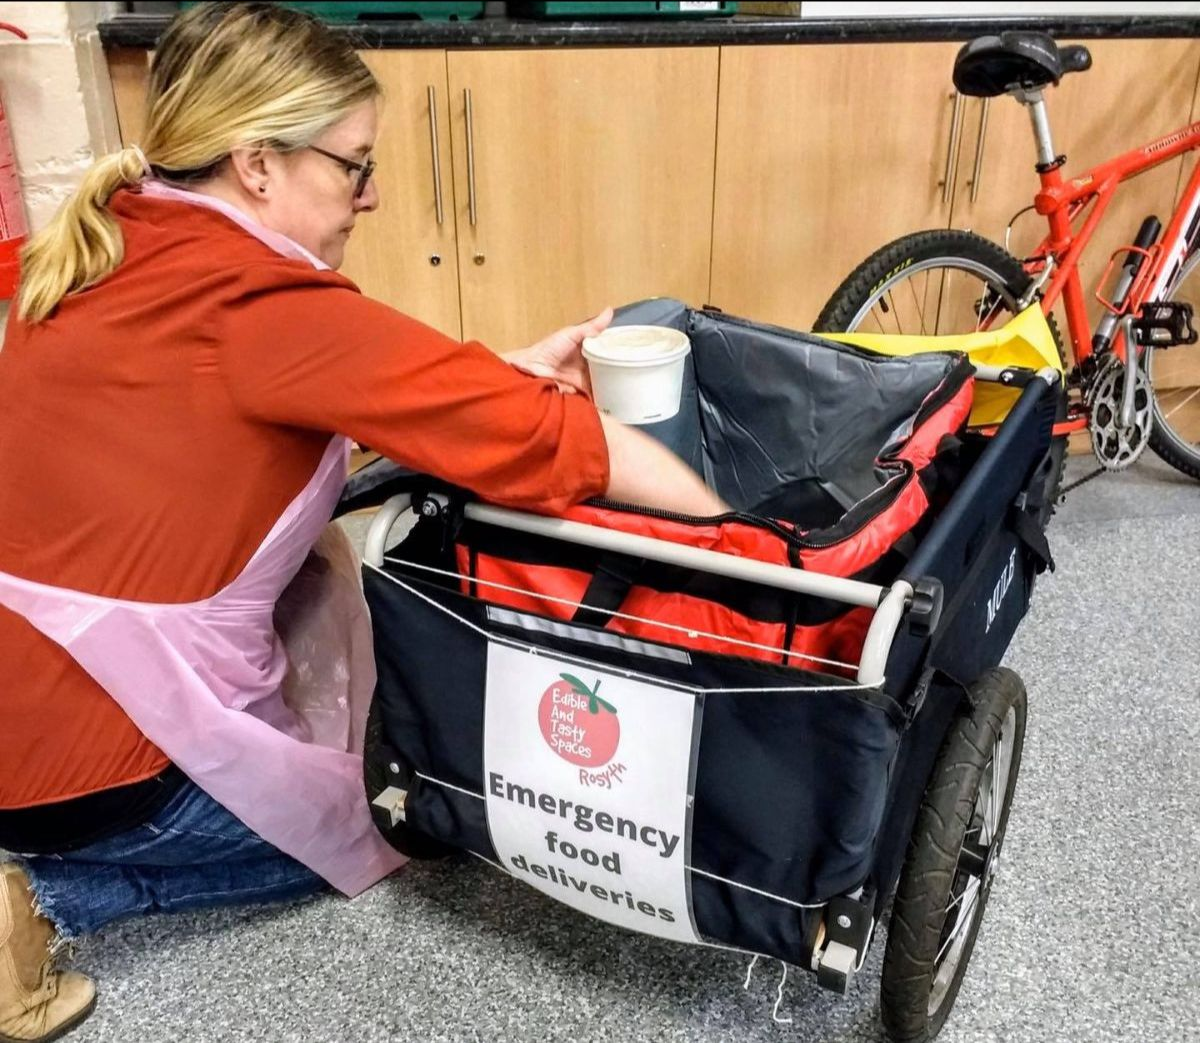 EATS Rosyth Food Project Manager Karen, filling the trolley on back of delivery bicycle.